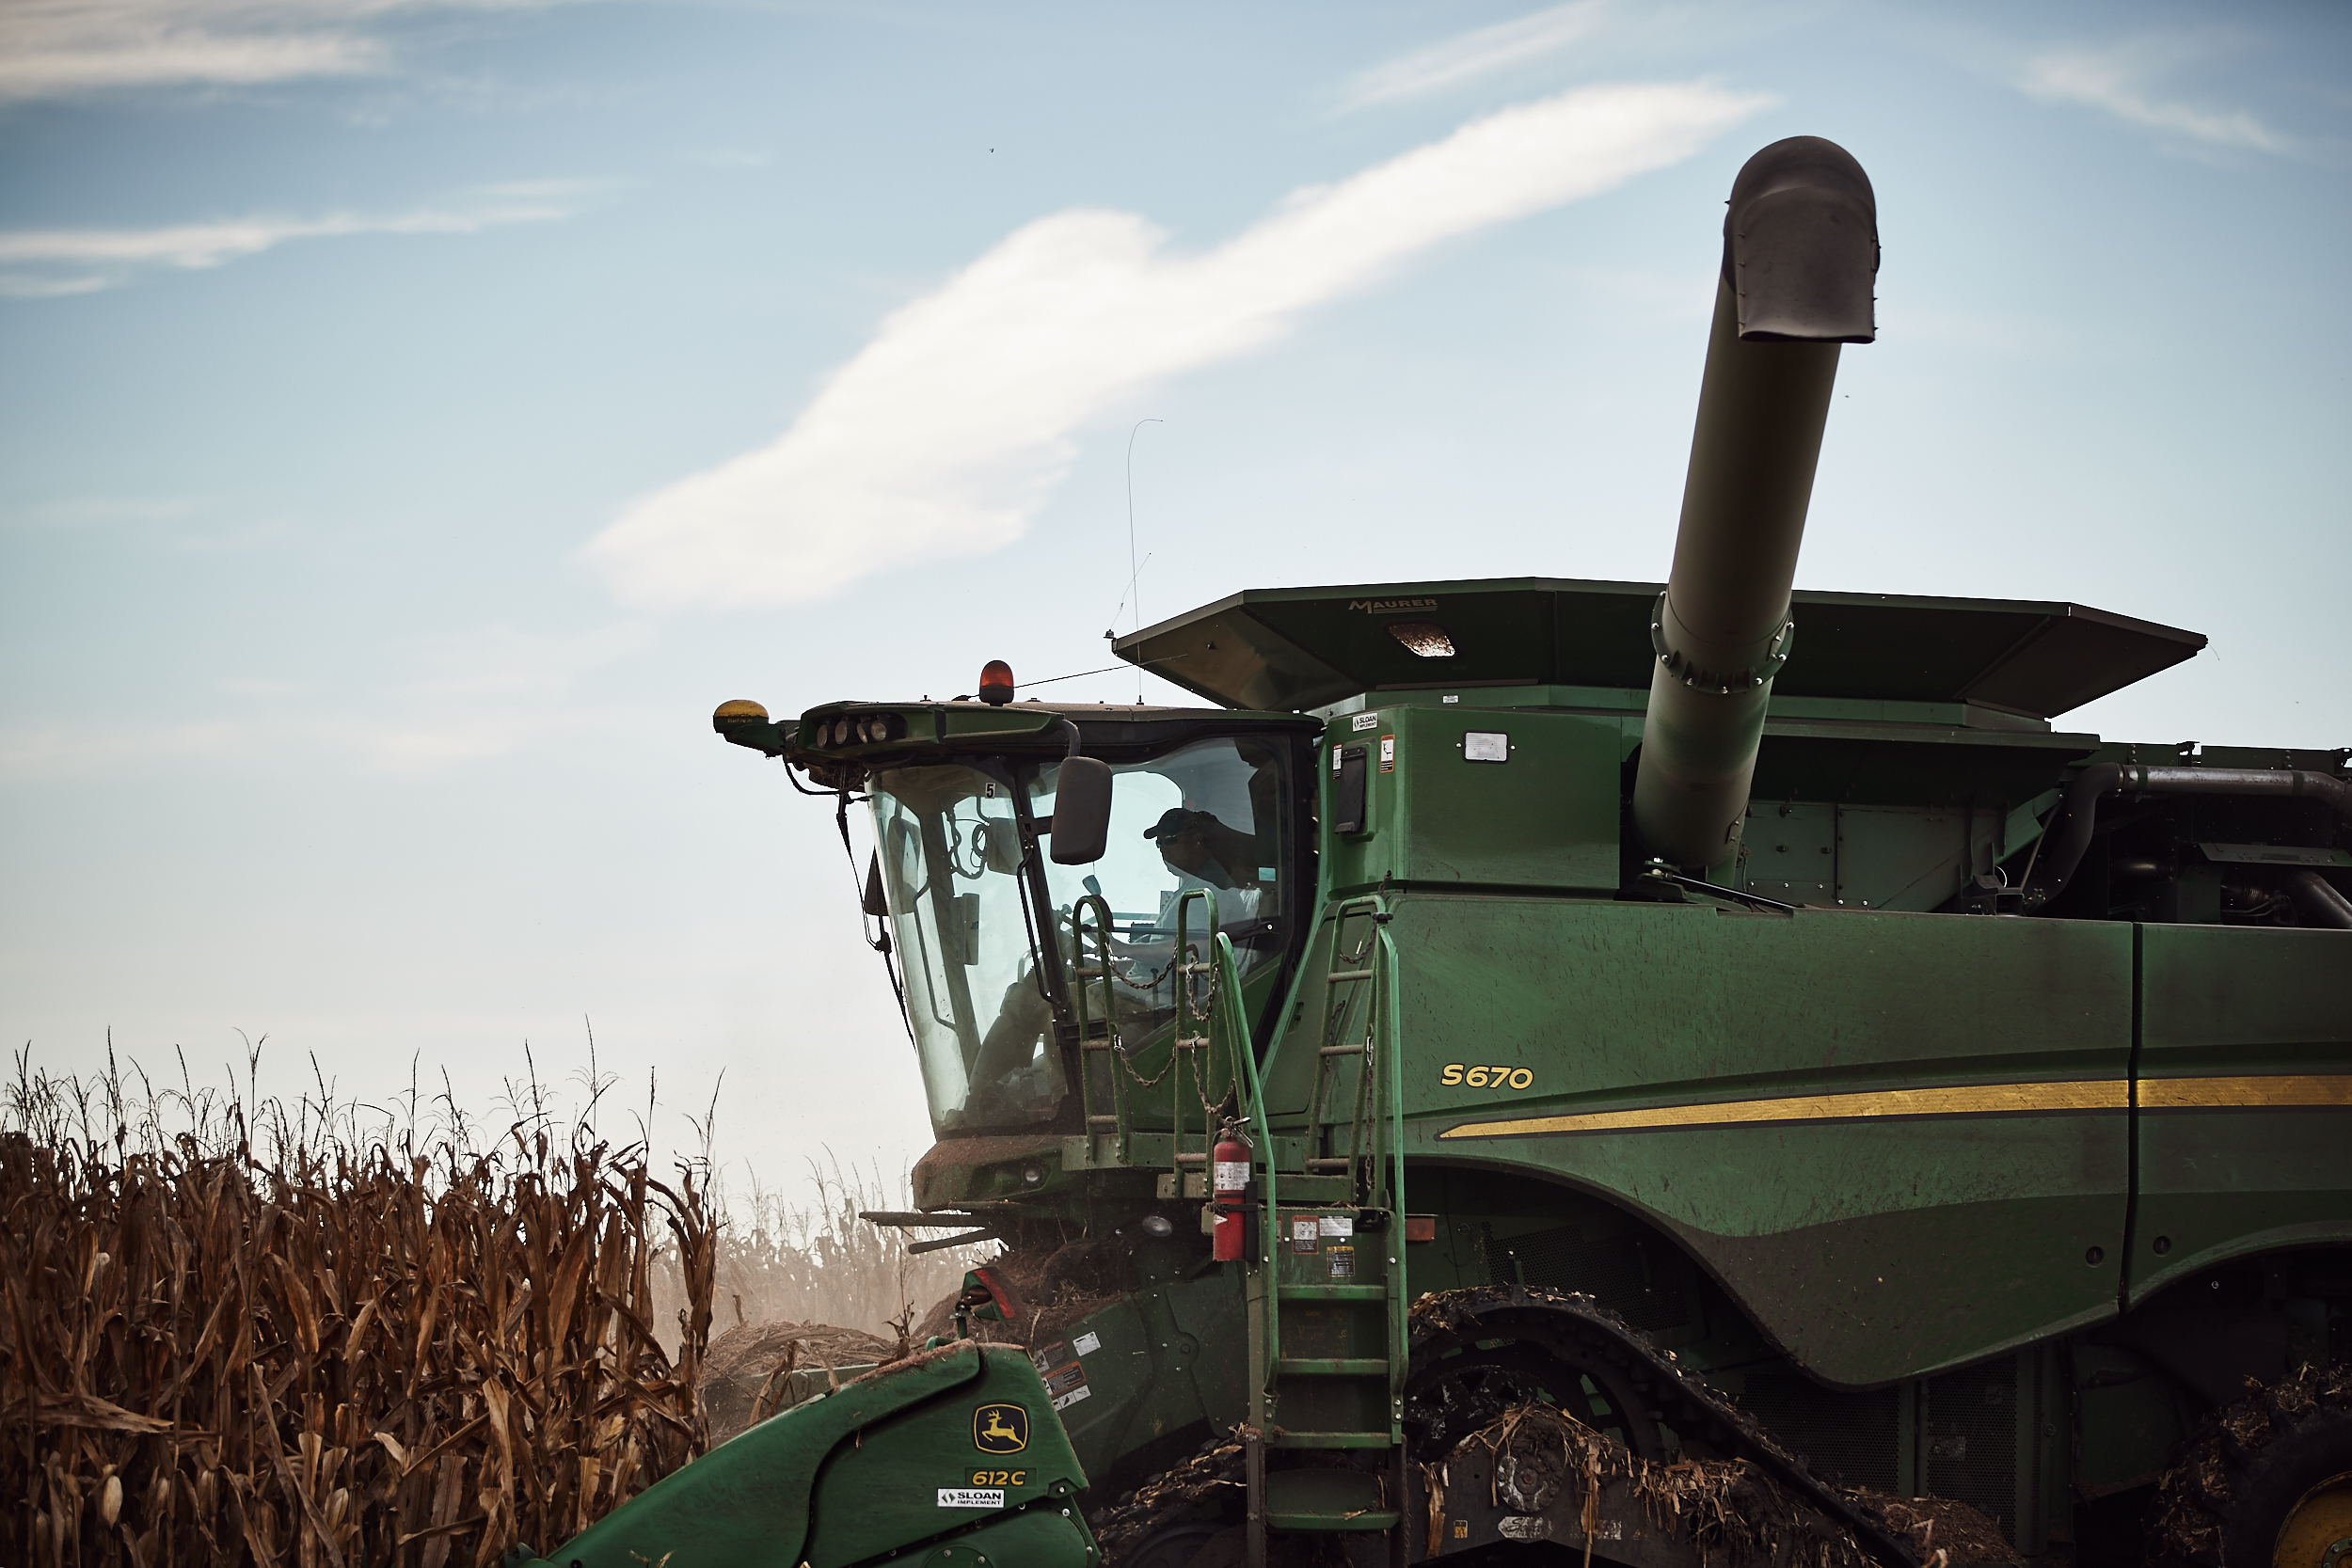 A harvester working in the corn field up close